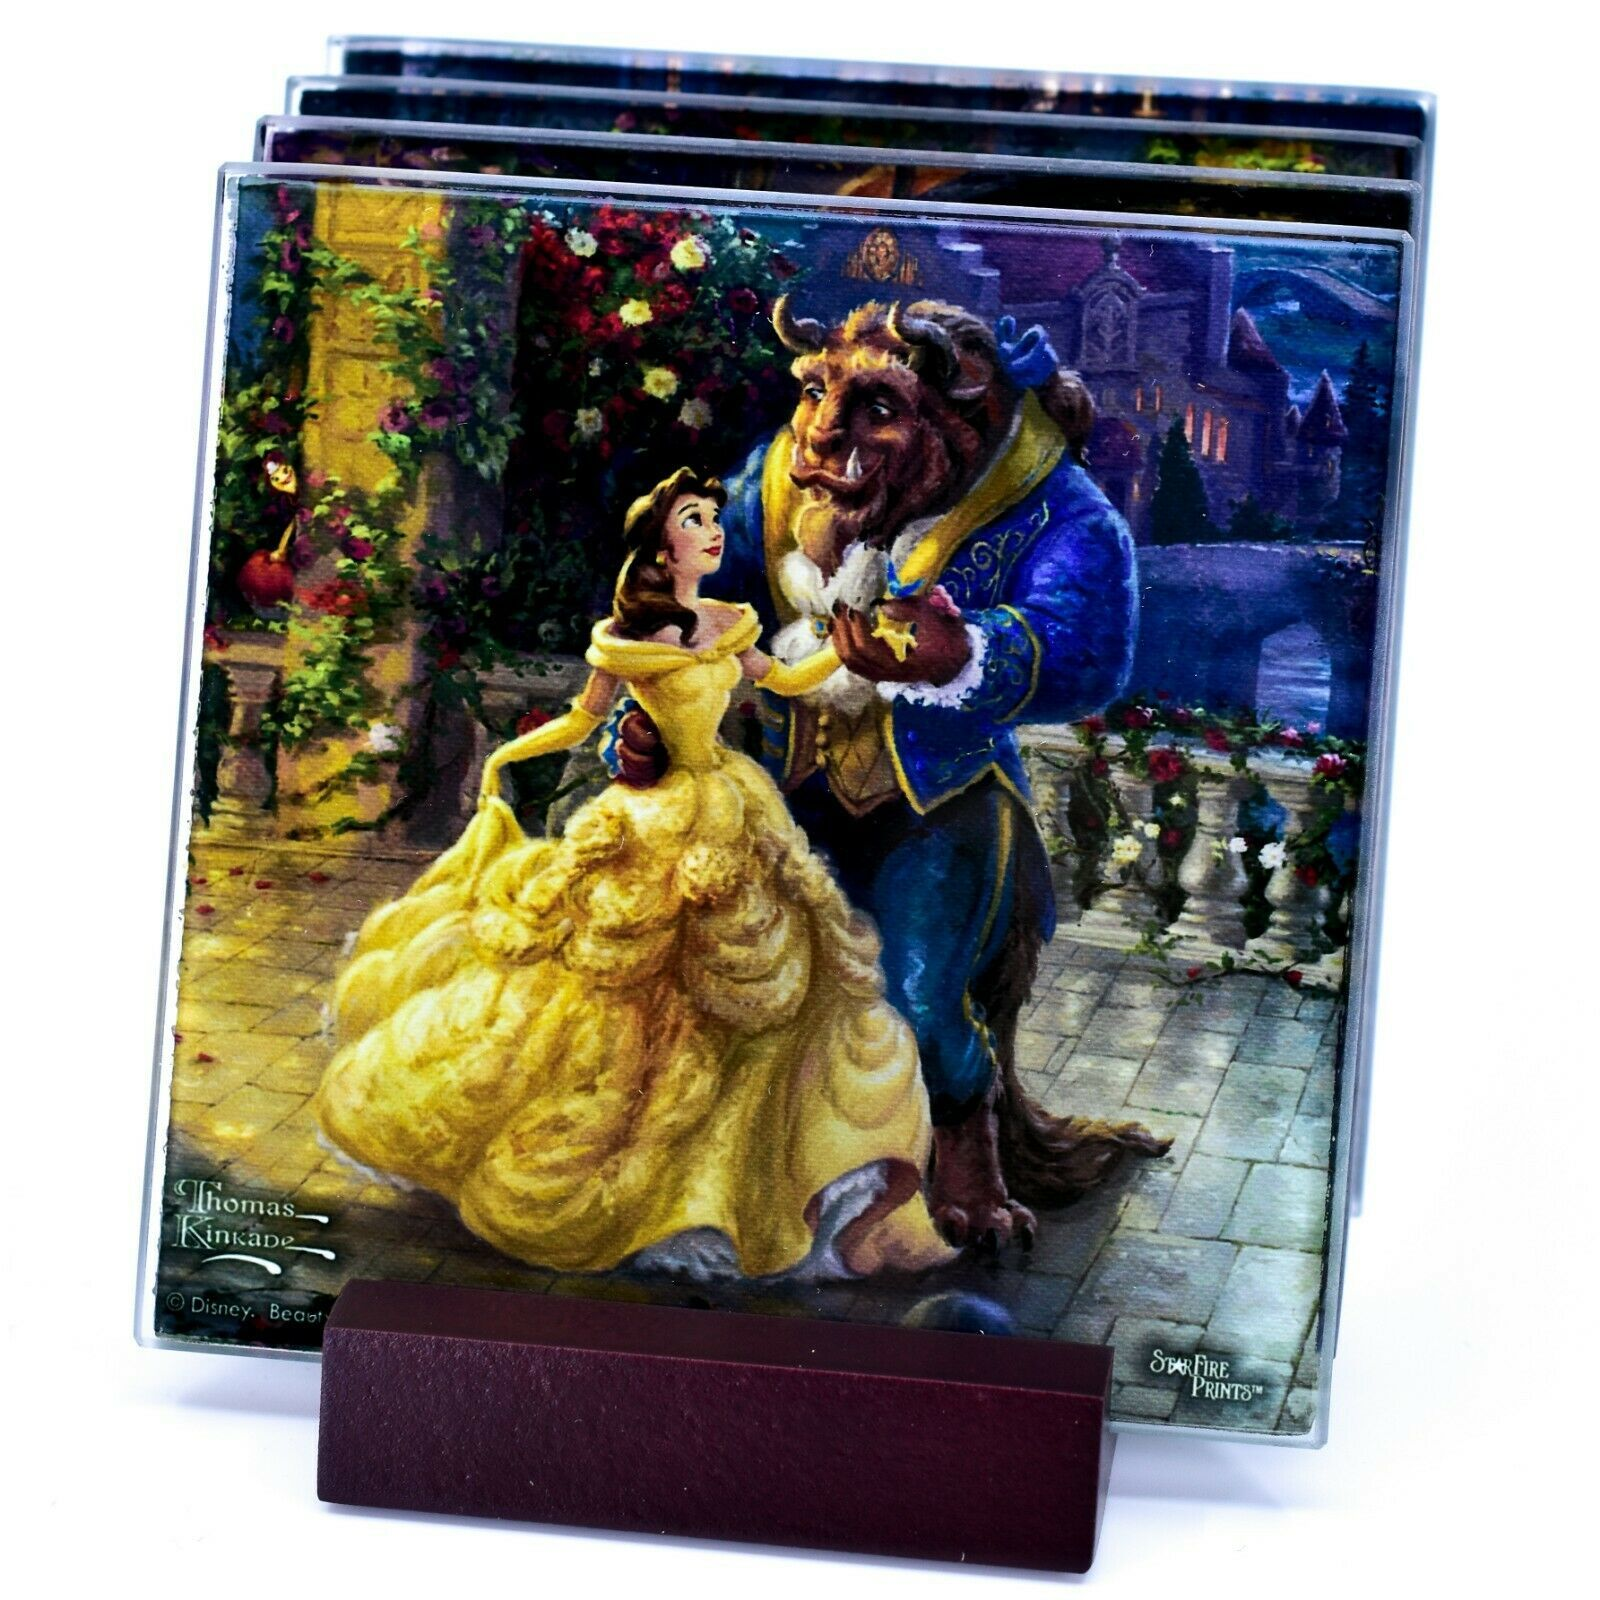 Thomas Kinkade Disney's Beauty and the Beast Prints 4 Pc Fused Glass Coaster Set